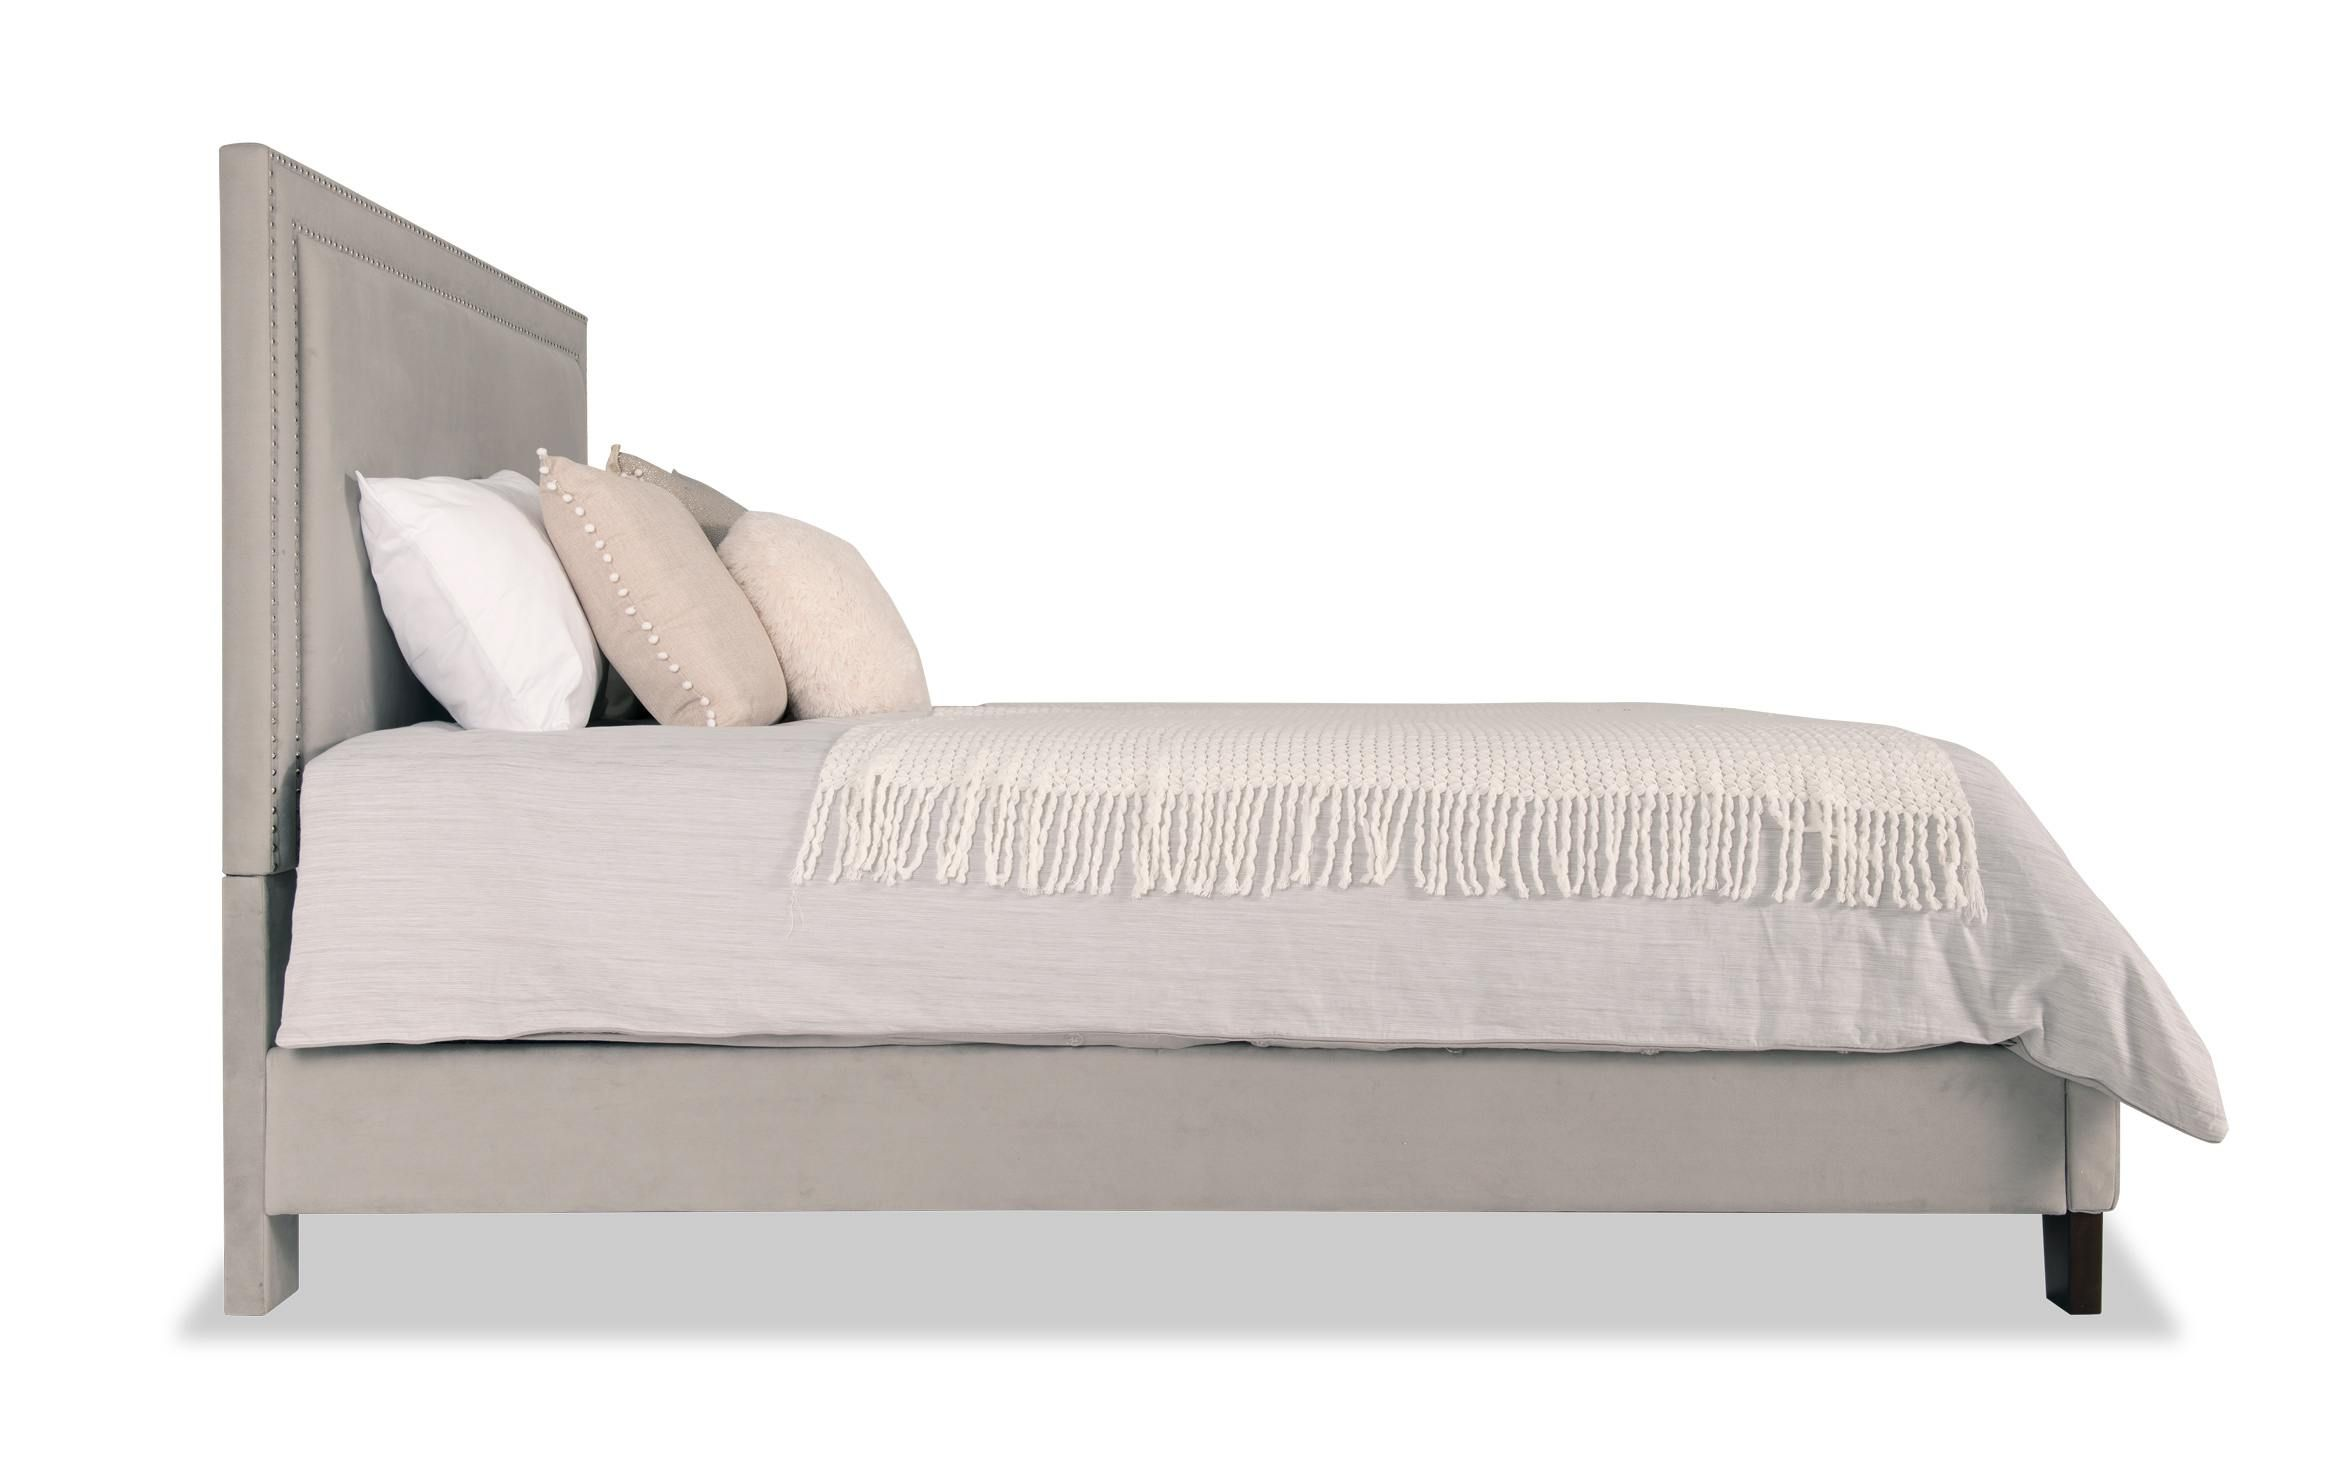 Tremont Queen Gray Upholstered Bed Grey Upholstered Bed Upholstered Beds Bed